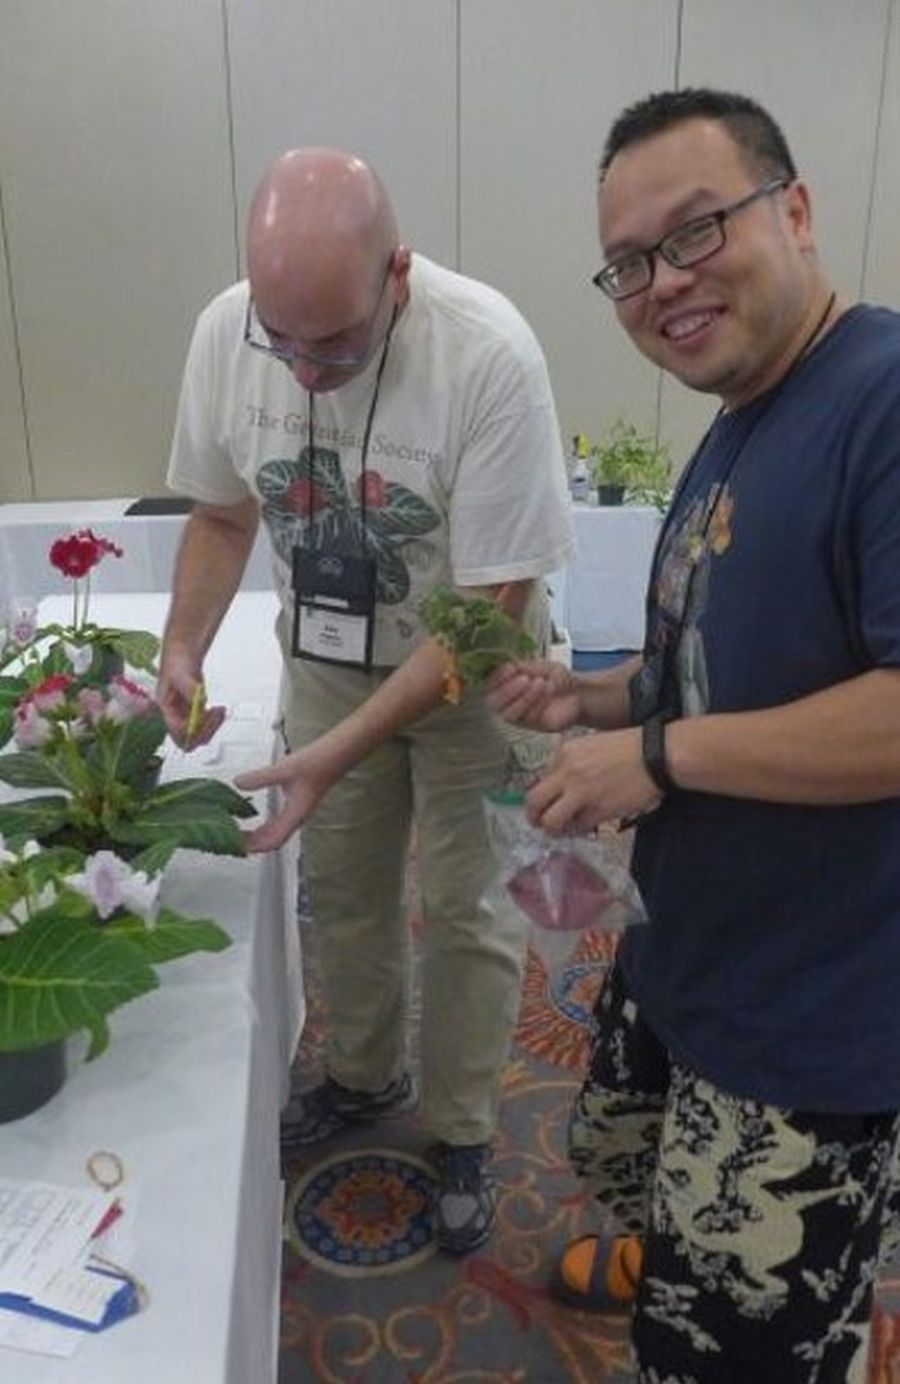 Jay Sespico sharing cuttings of his show plants at breakdown with Wen Fang